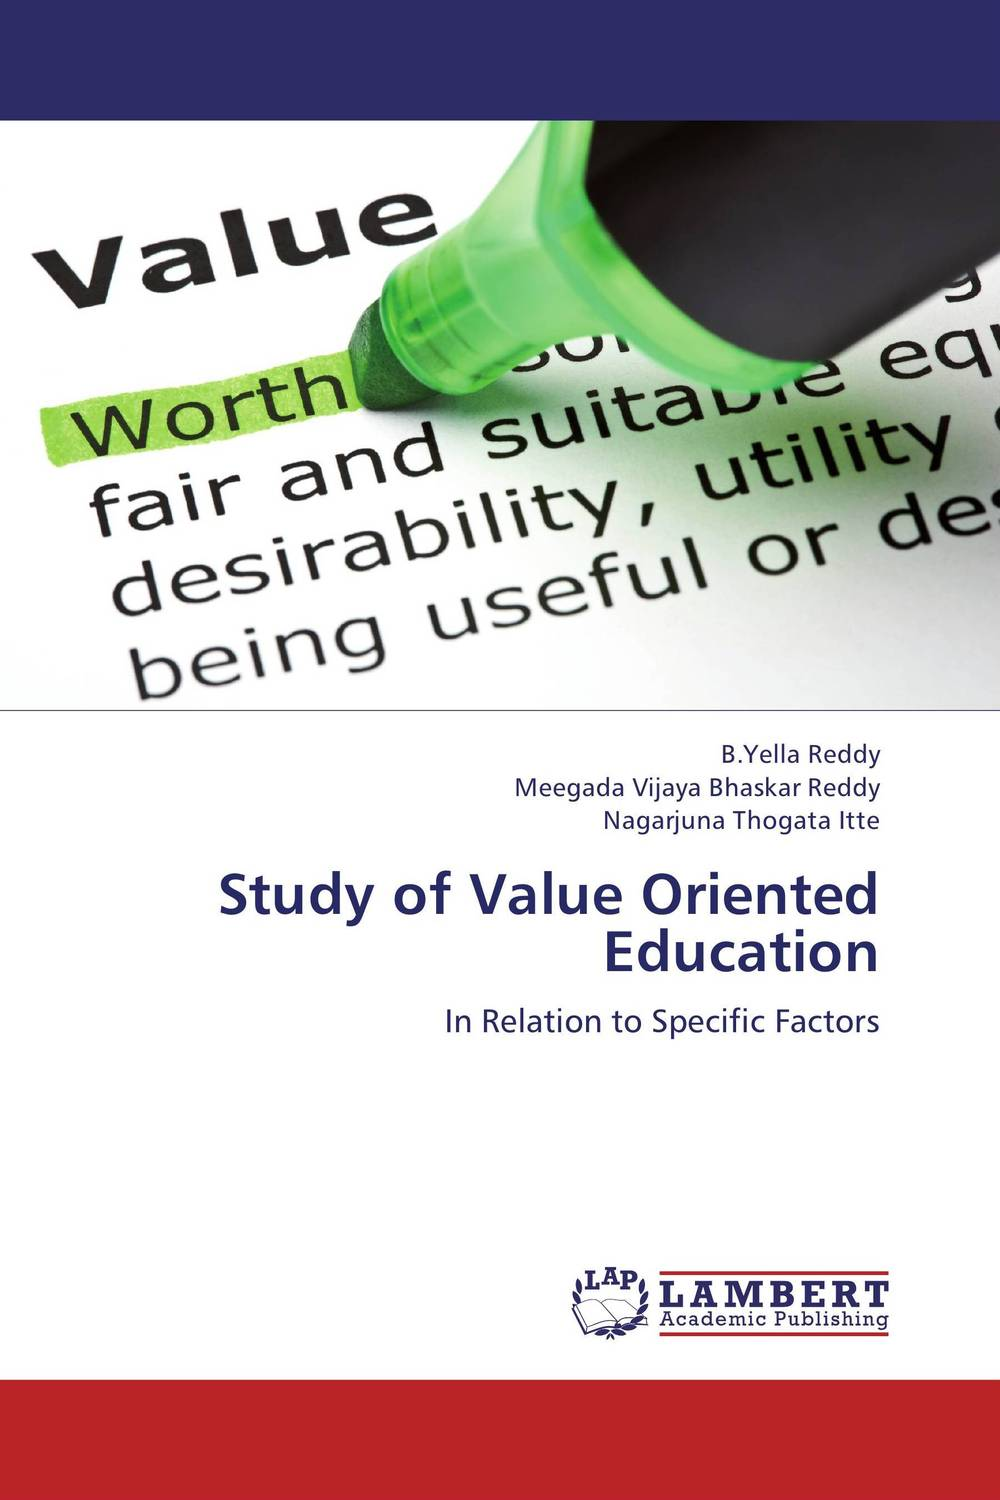 Study of Value Oriented Education